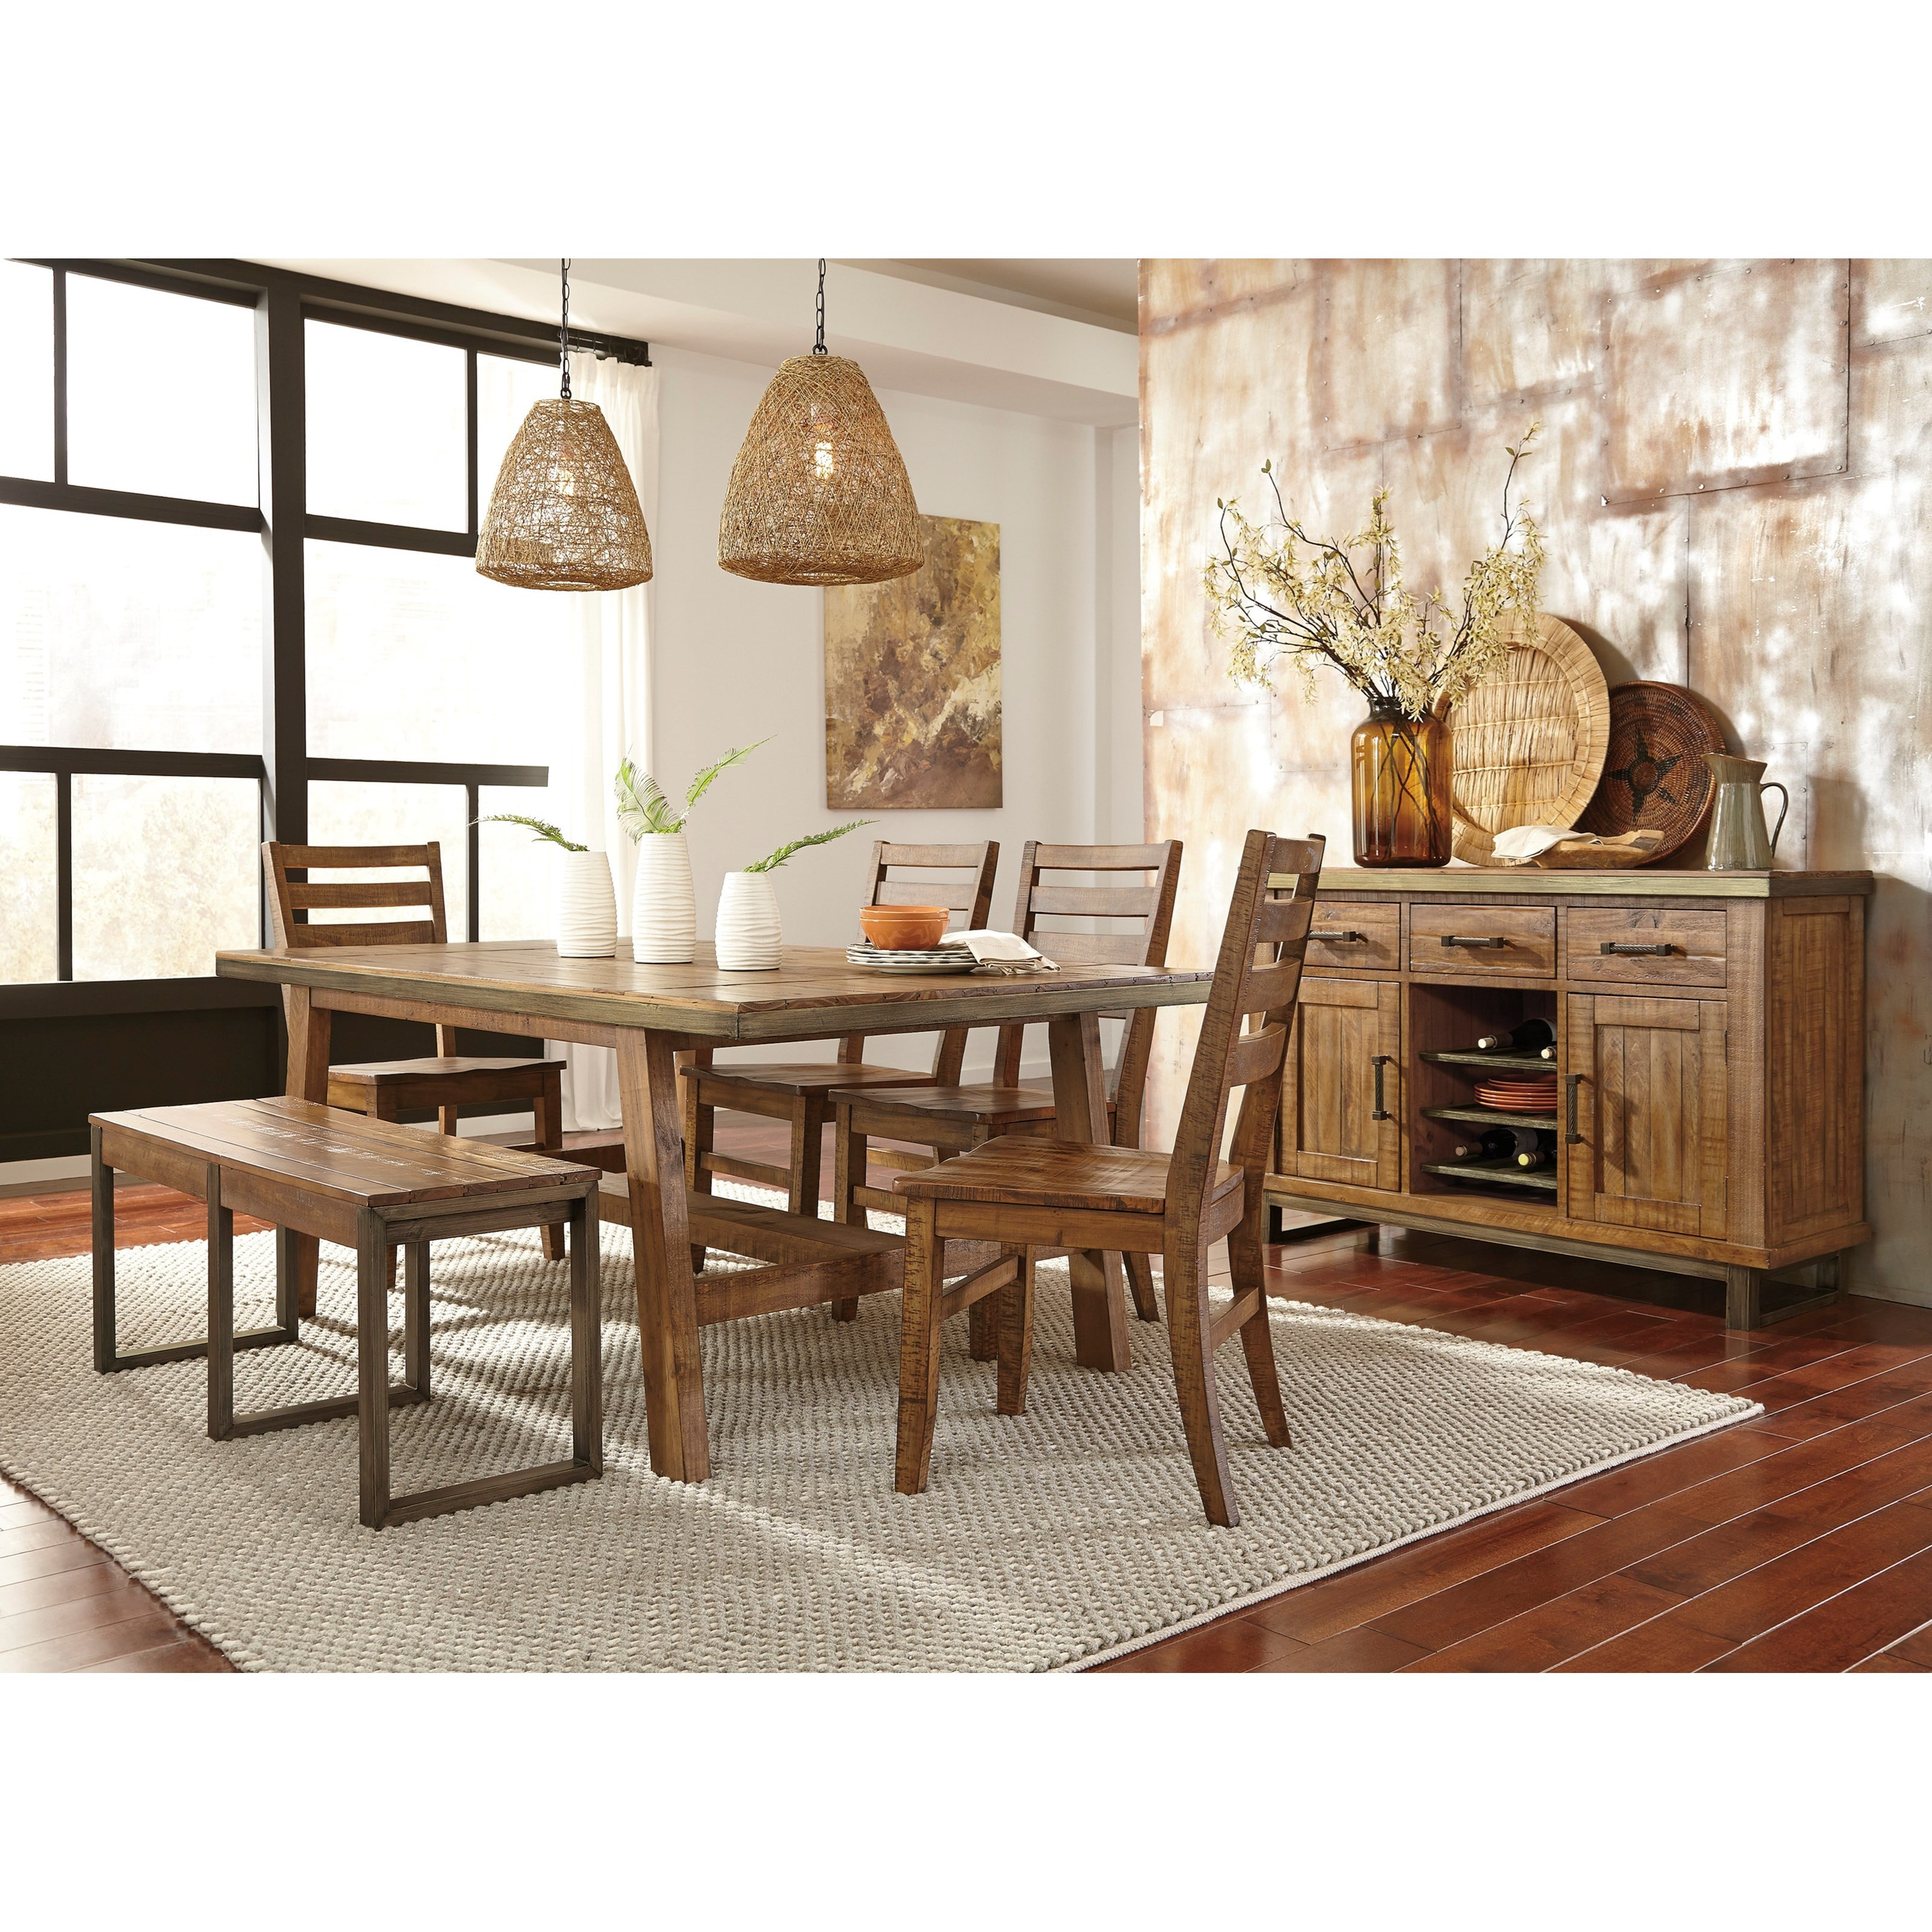 Ashley Furniture Dondie Collection